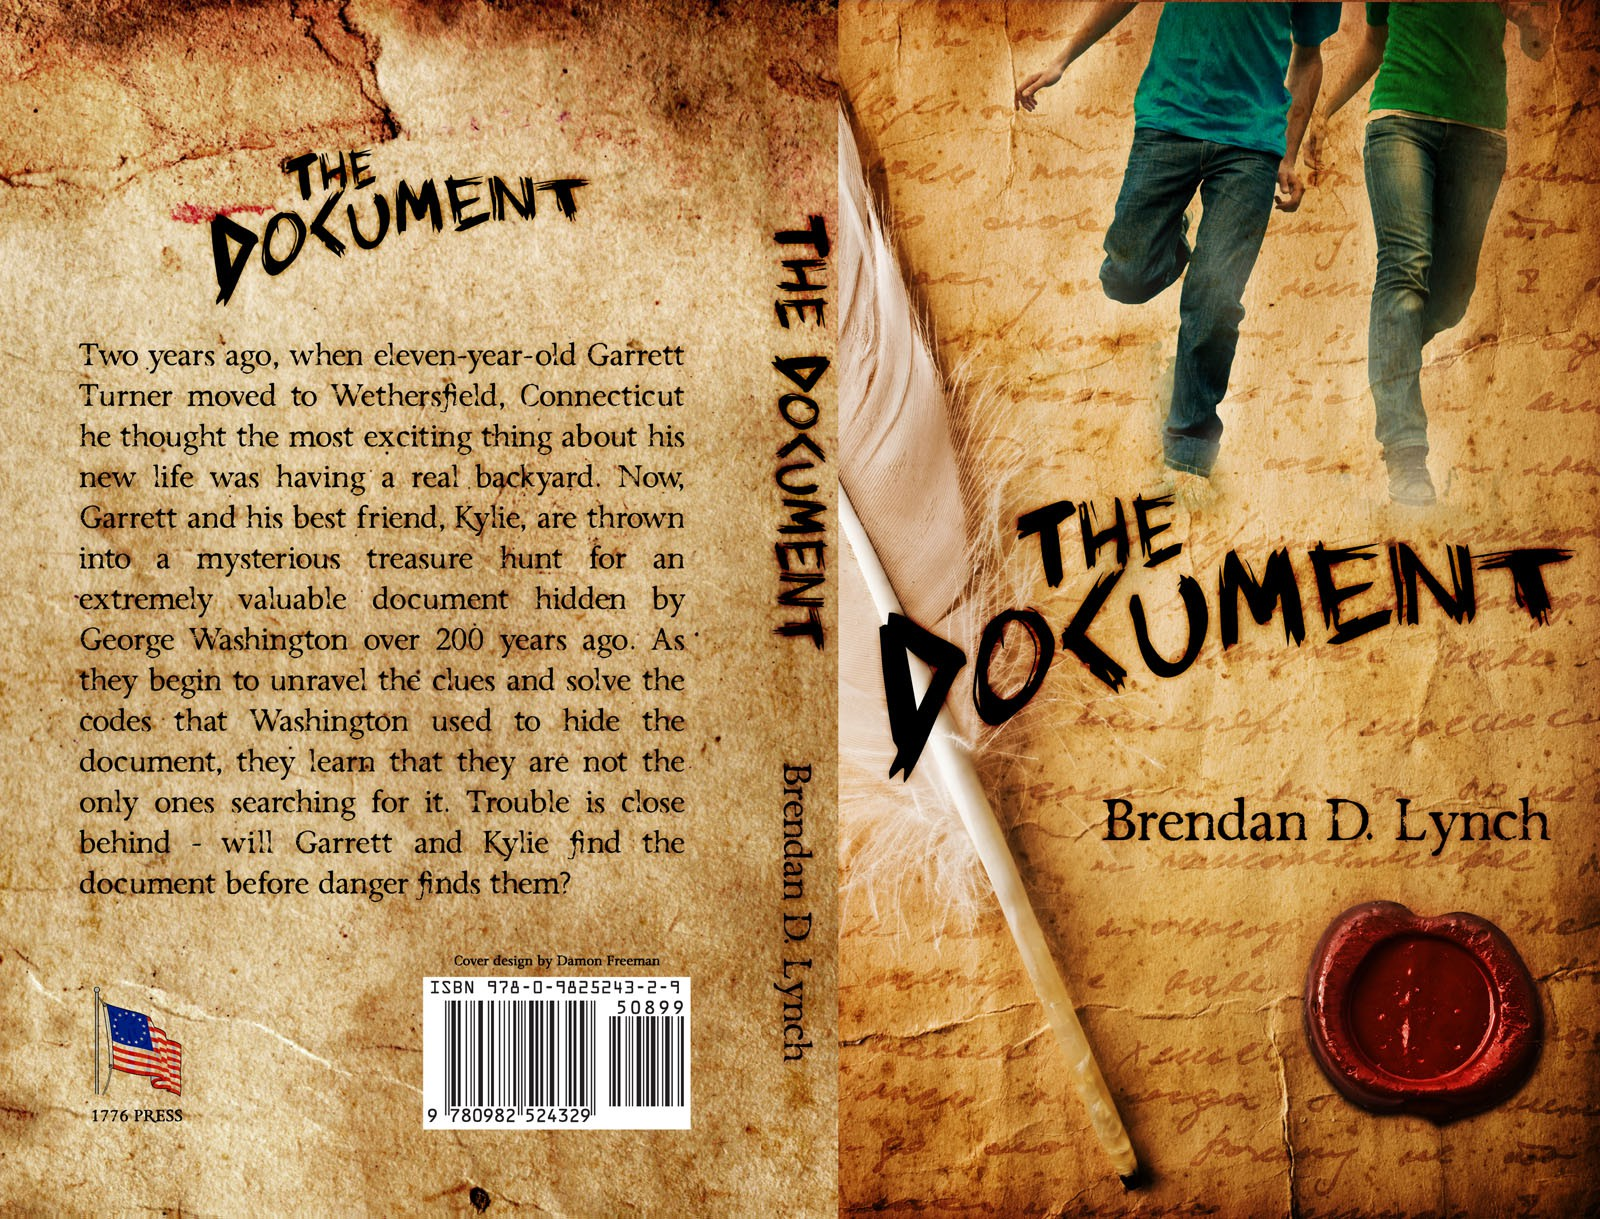 Book Cover needed for Middle Grades Mystery/Adventure novel